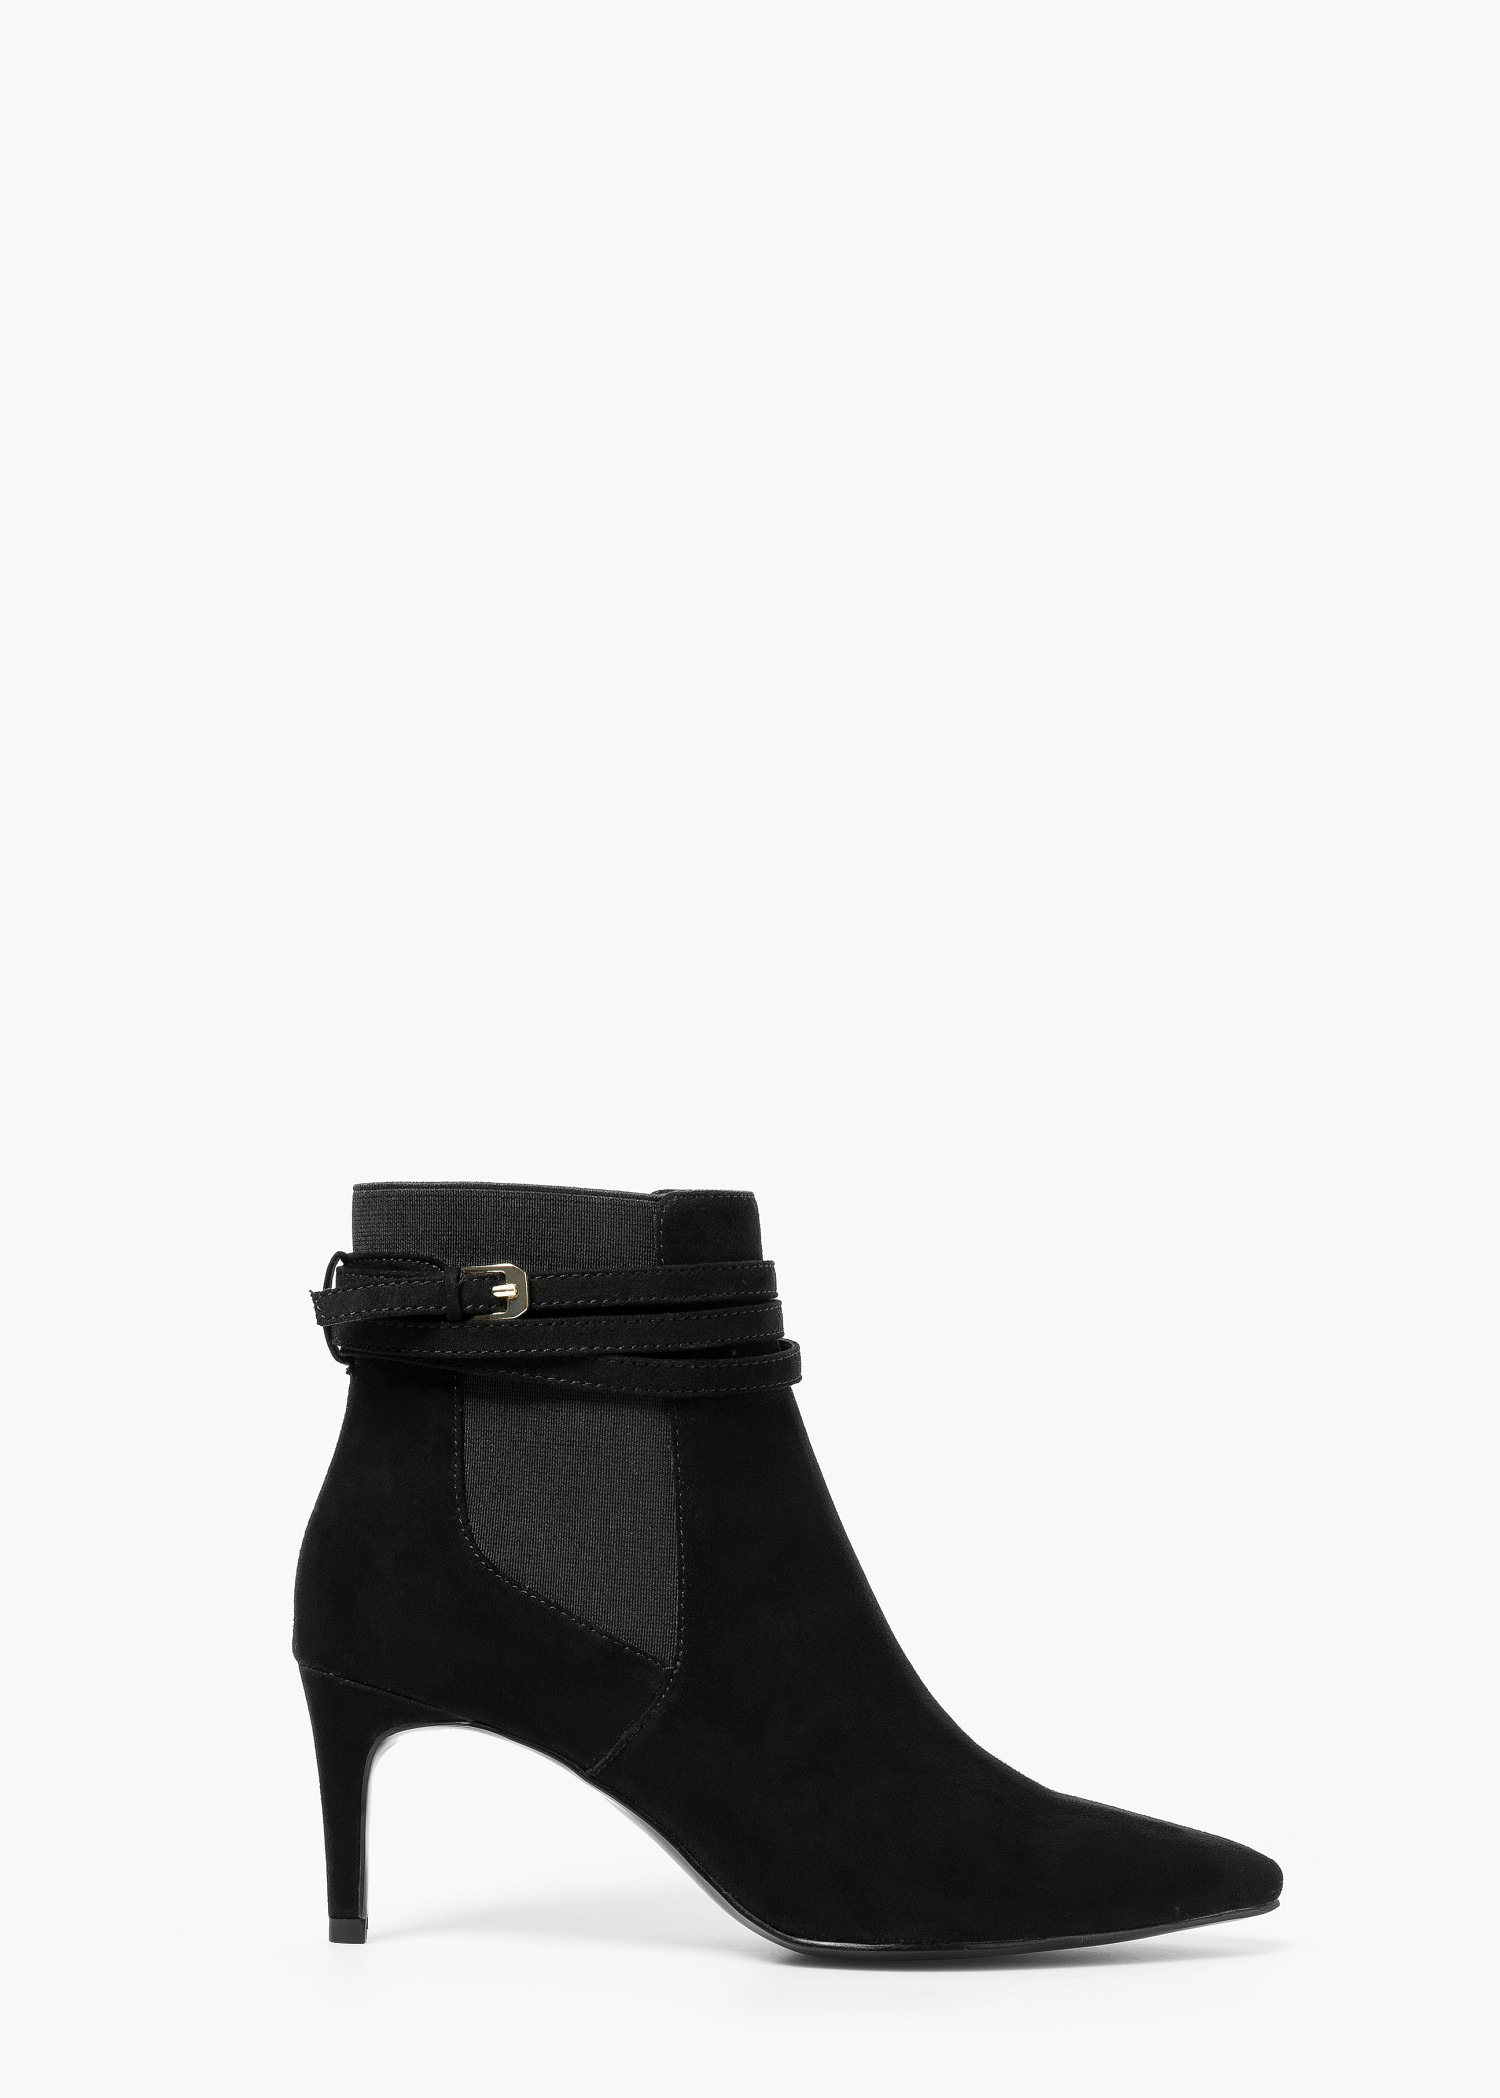 Mango Buckle Ankle Boots in Black | Lyst